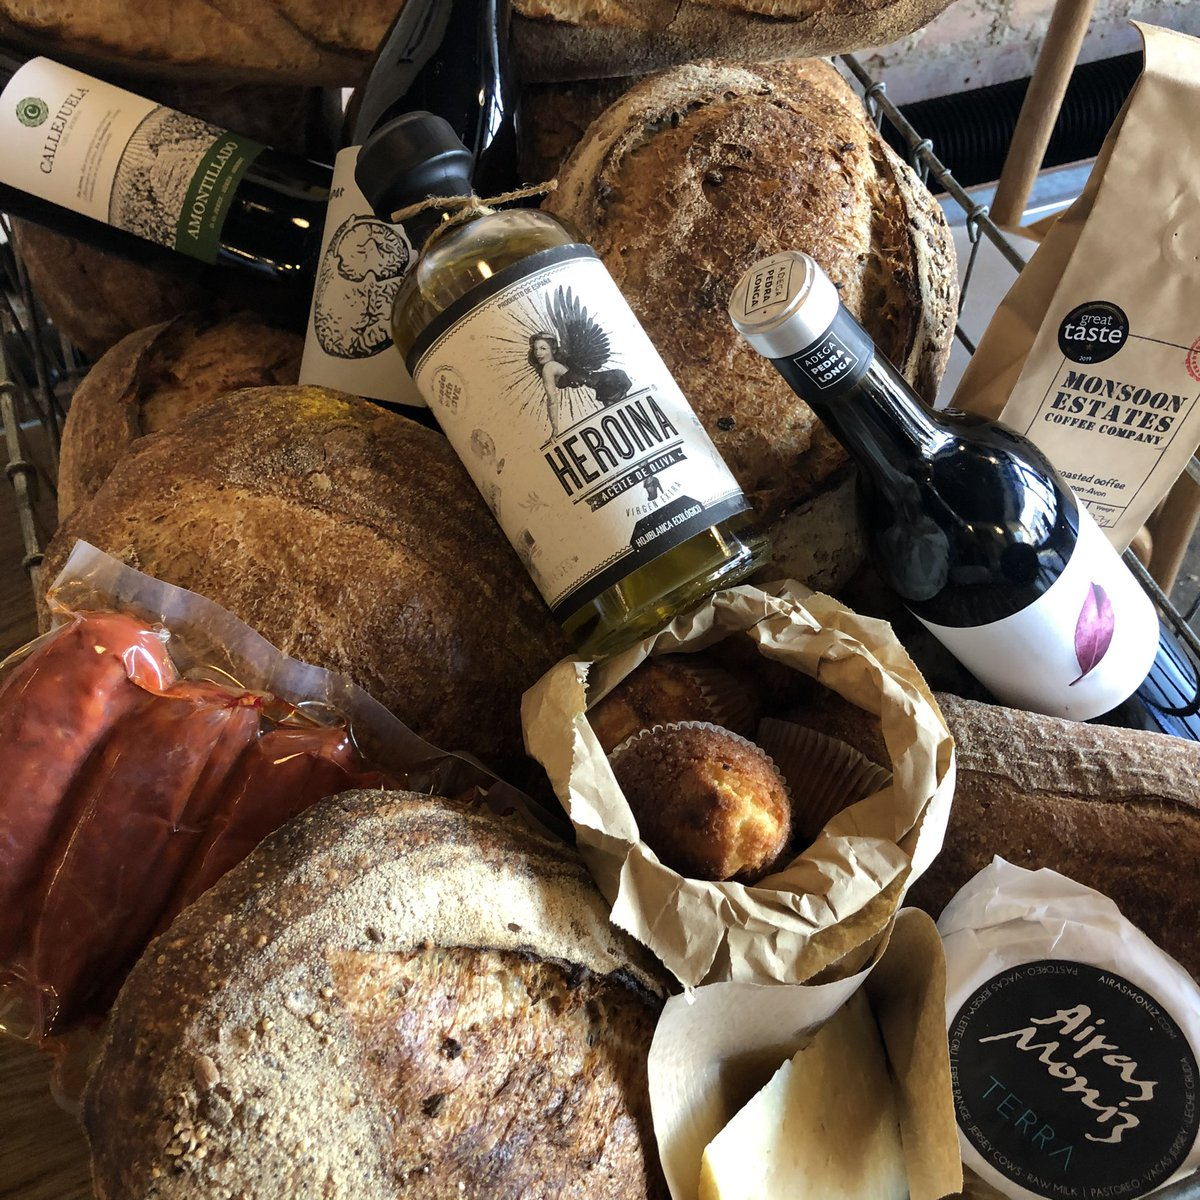 Shop @LocultoSe4 on Brockley road open today until 12-3 then 6-10pm  #sourdough #coffee #naturalwine #sherry #madalenas #rawhoney #glutenfree #chorizo #Rawmilk  #cheese #artisan  One person in the shop at a time please, respect the personal space of others.pic.twitter.com/HeGmtu4quk